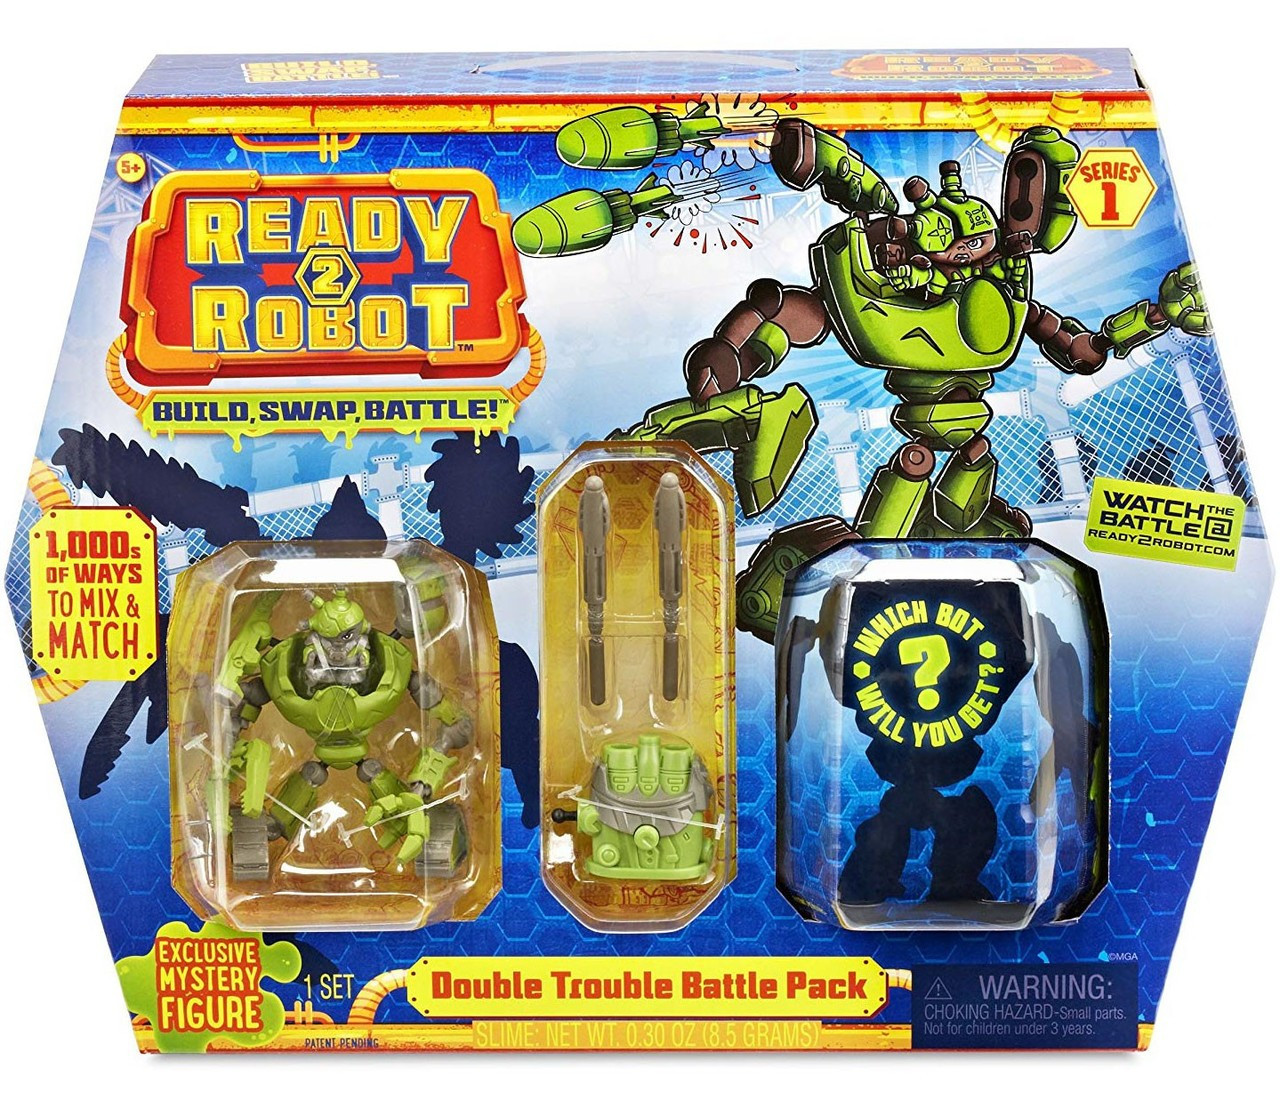 DOUBLE Trouble Battle Pack-Ready 2 Robot-Series 1